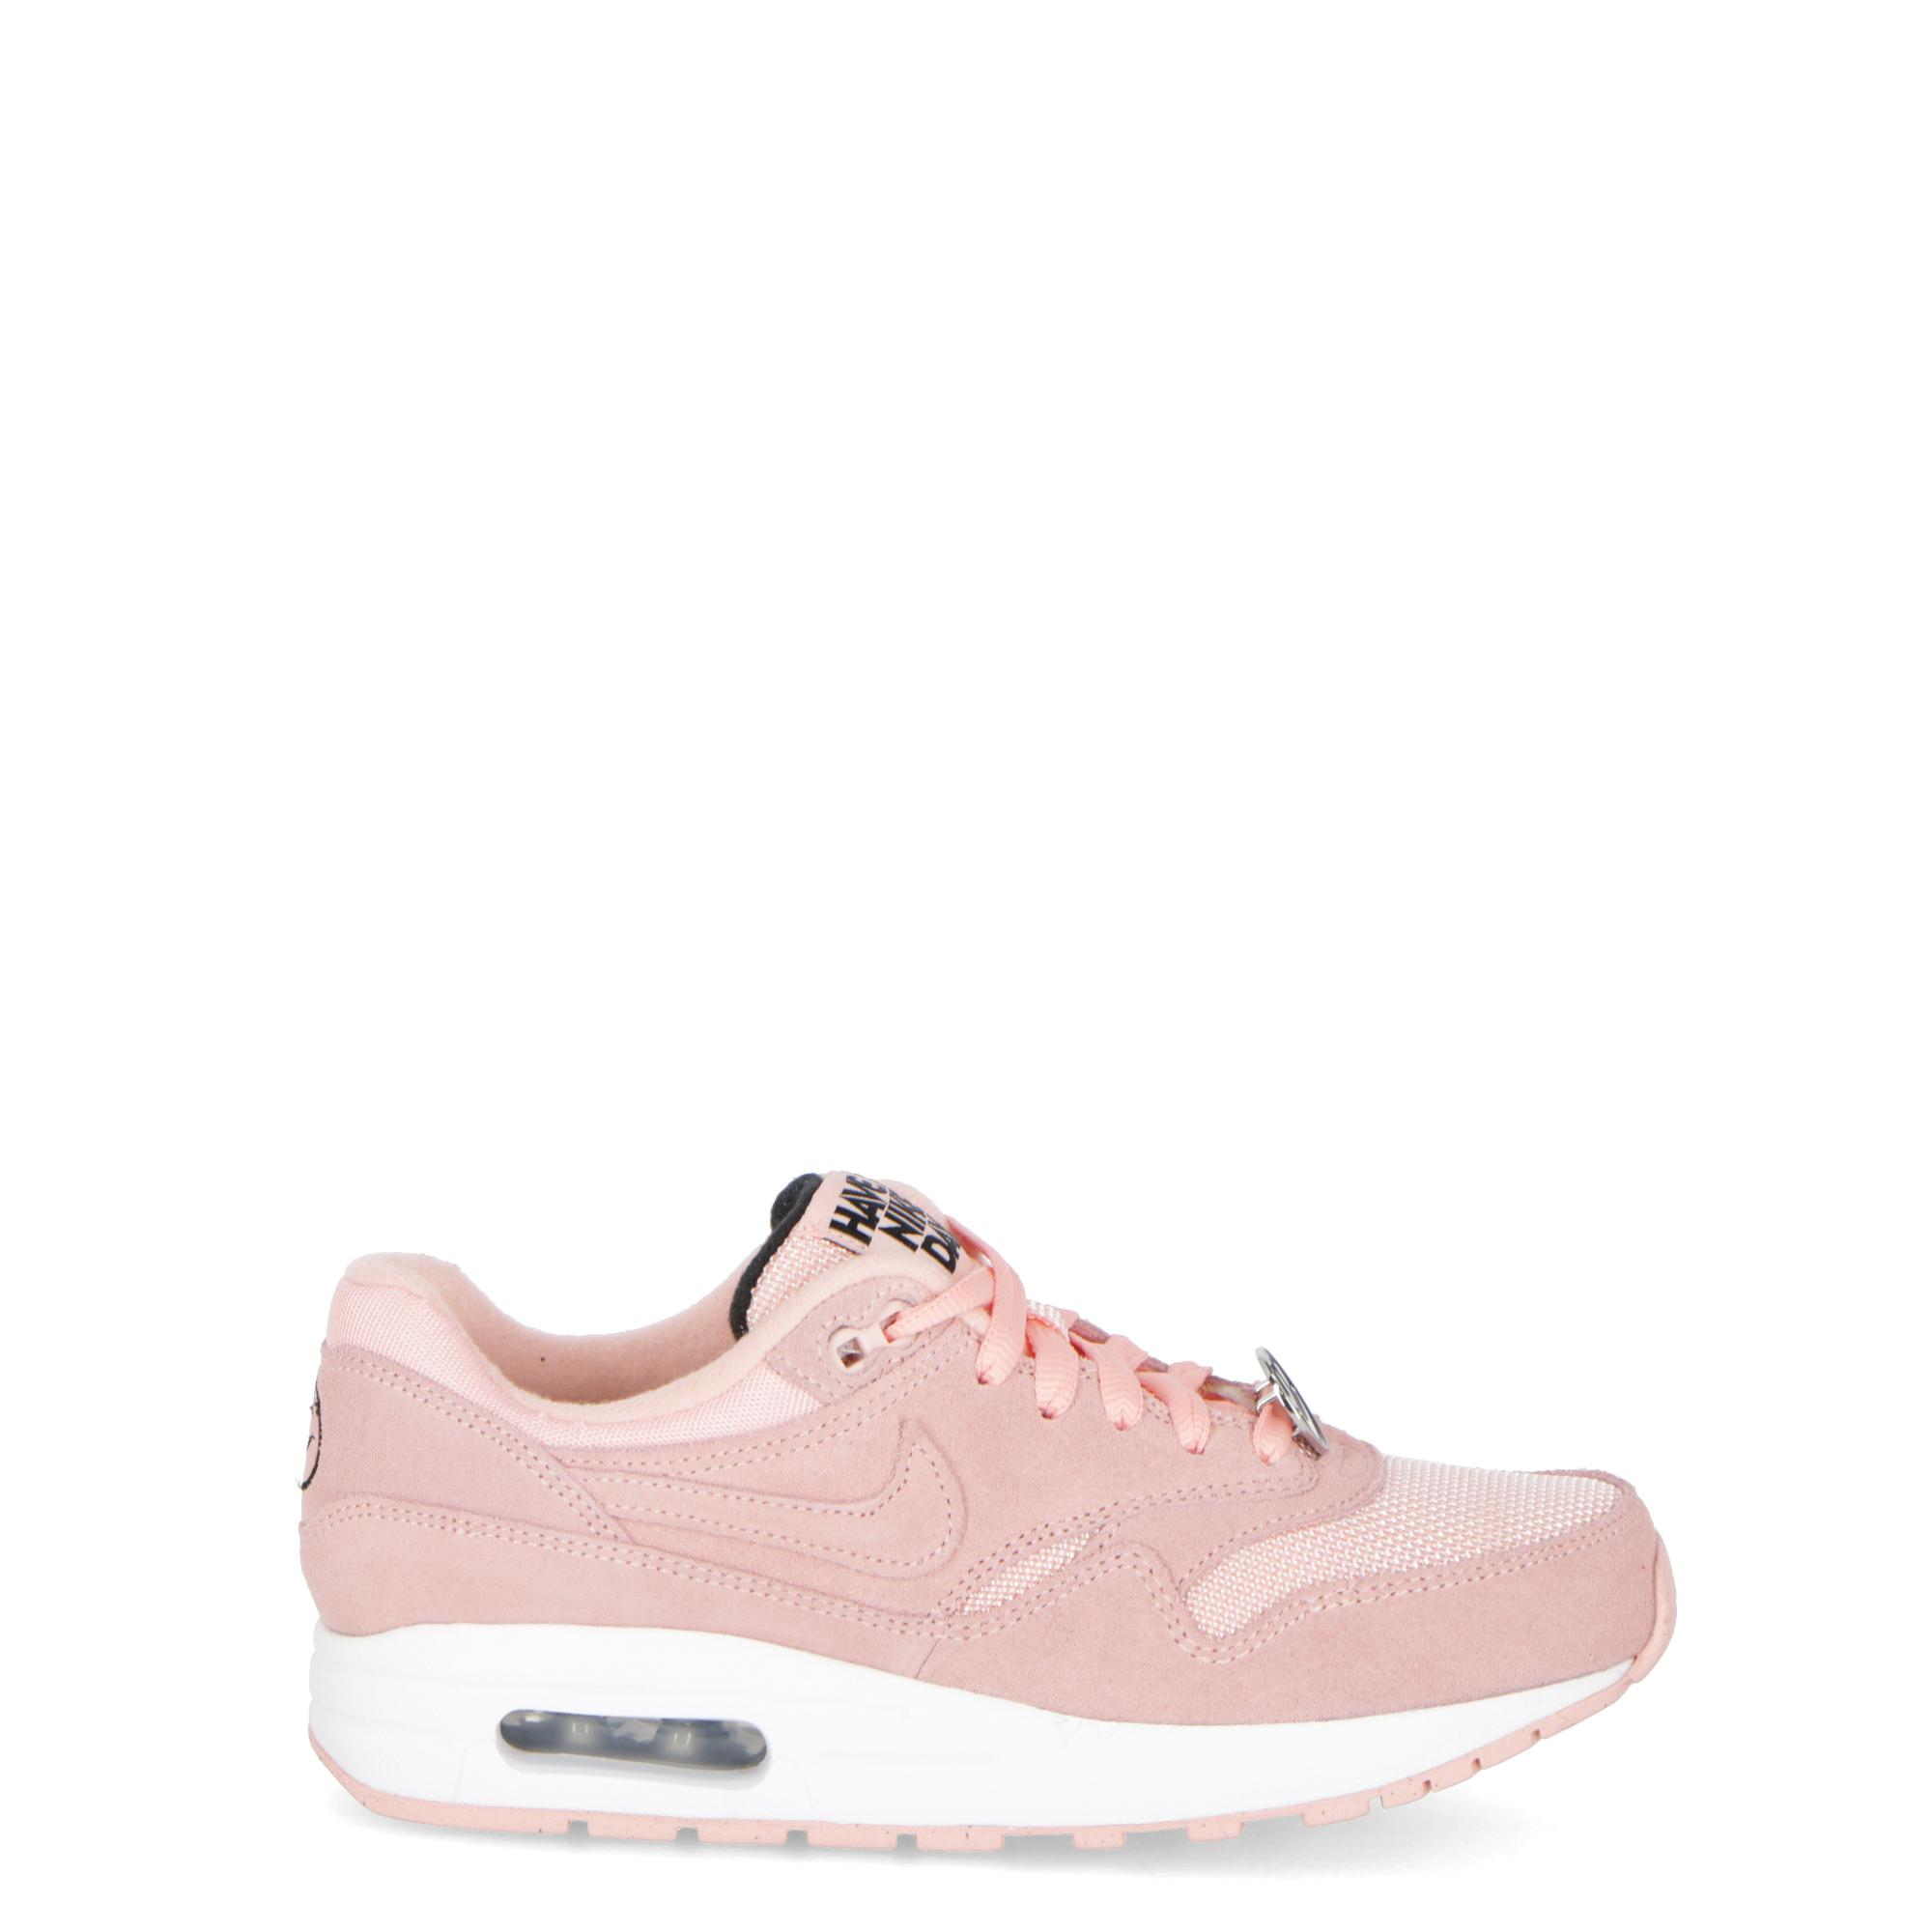 buy online 8092e 3828a Nike Air Max 1 Nike Day (gs) - Kids Bleached coral